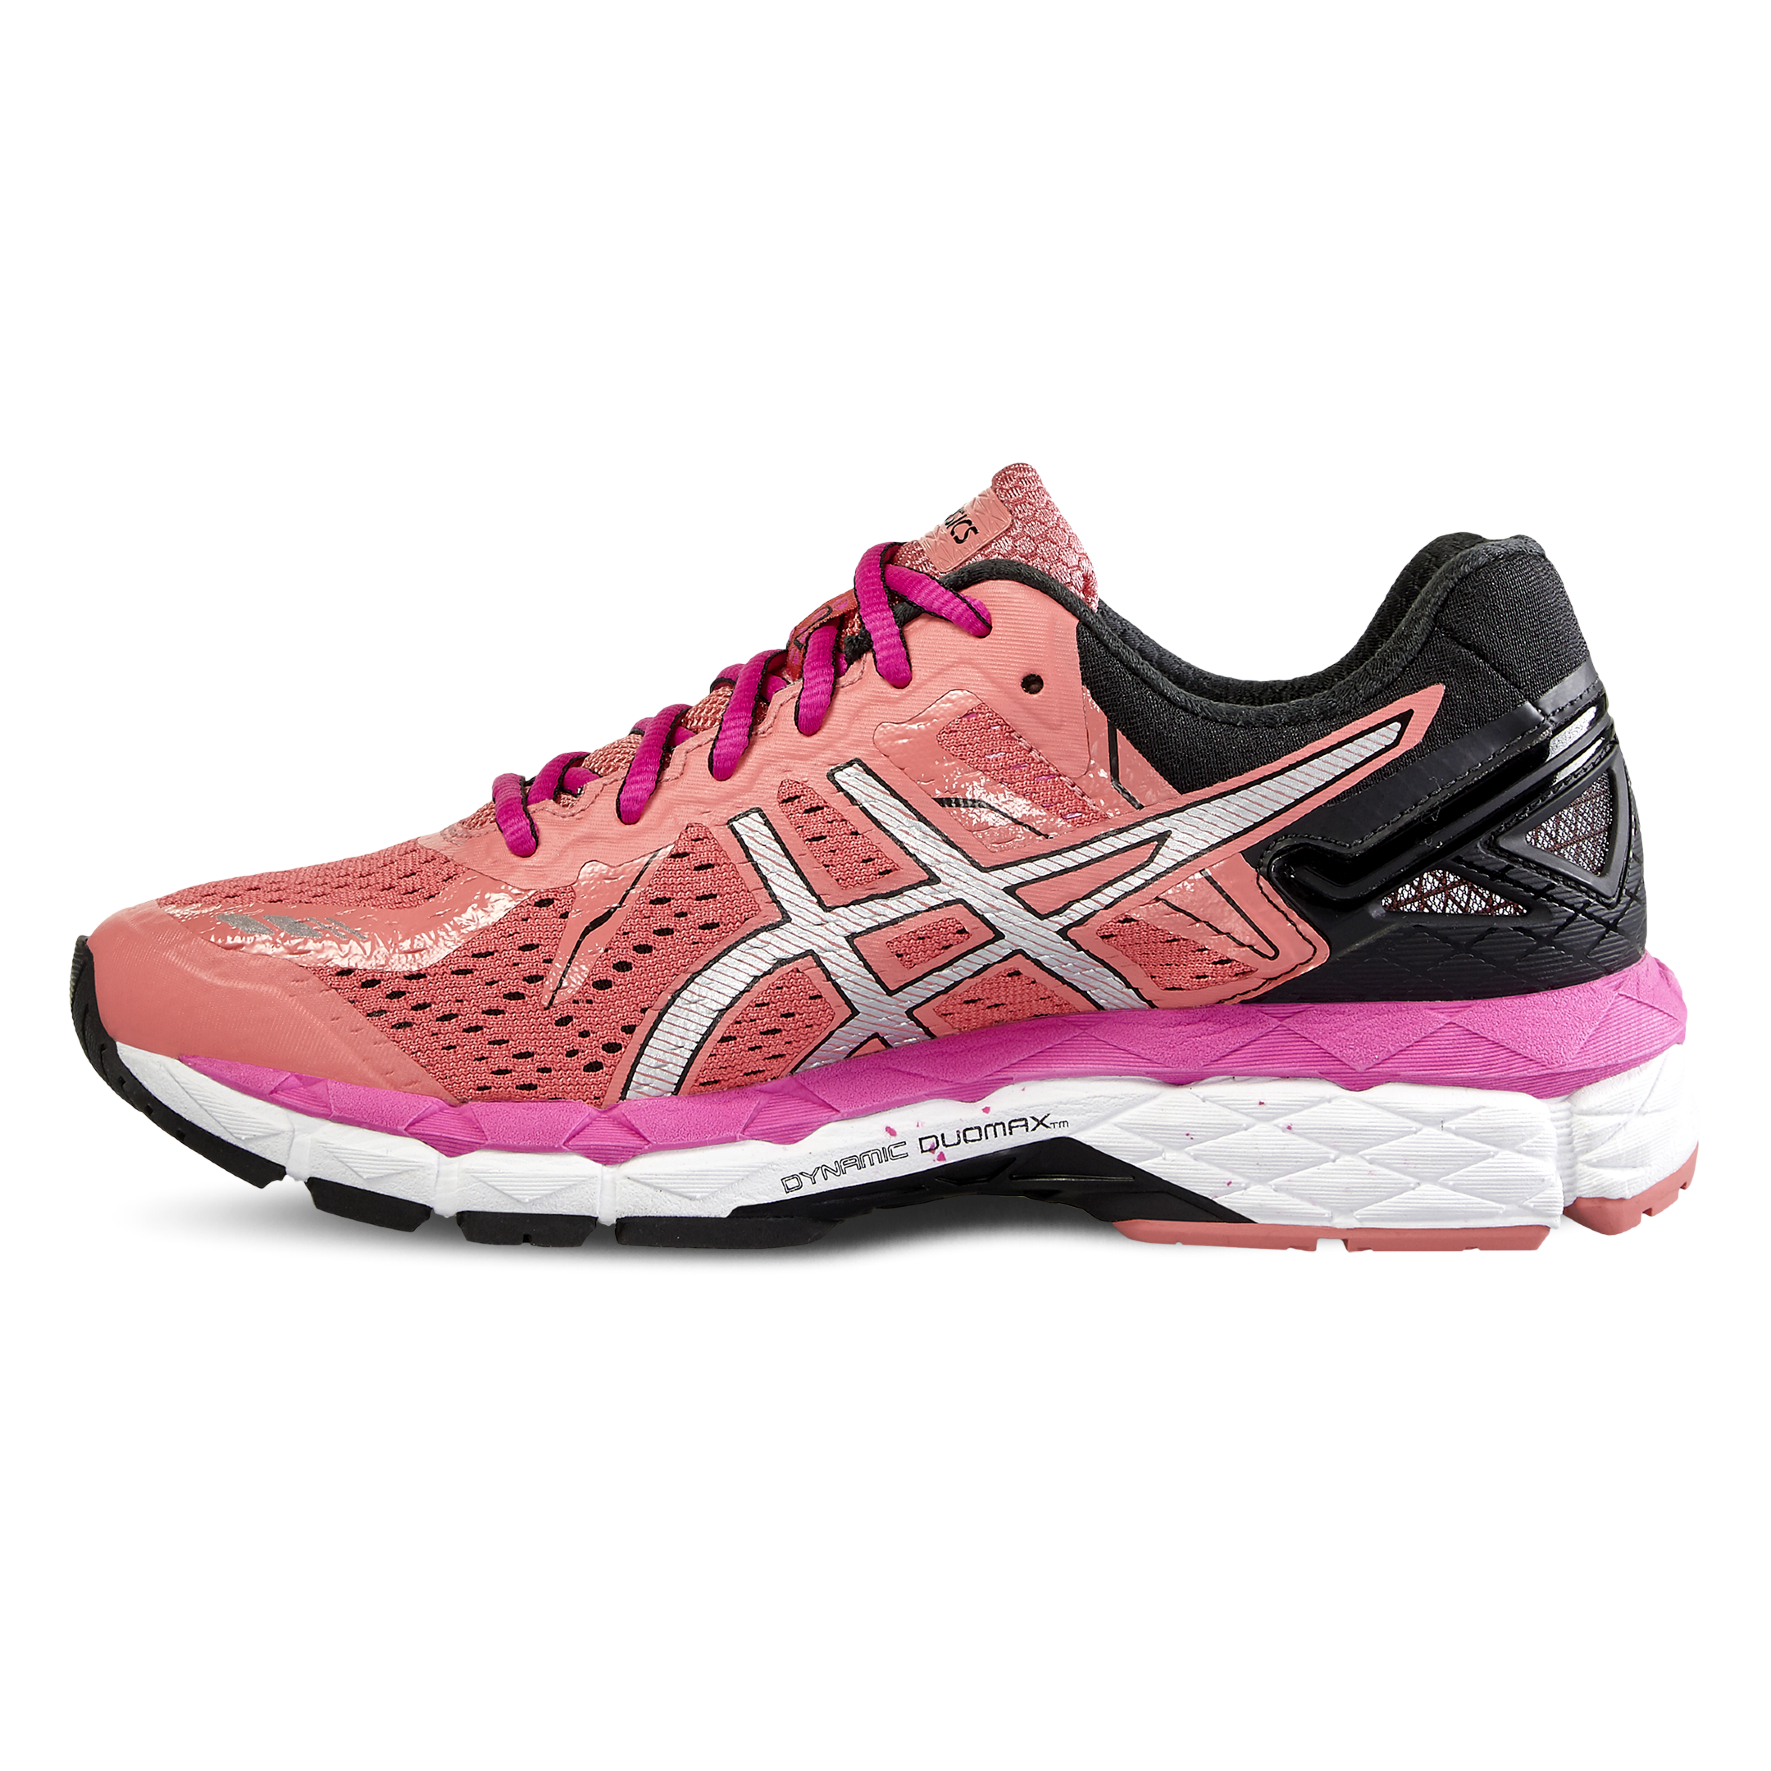 asics gel luminus 2 damen laufschuhe running schuhe. Black Bedroom Furniture Sets. Home Design Ideas